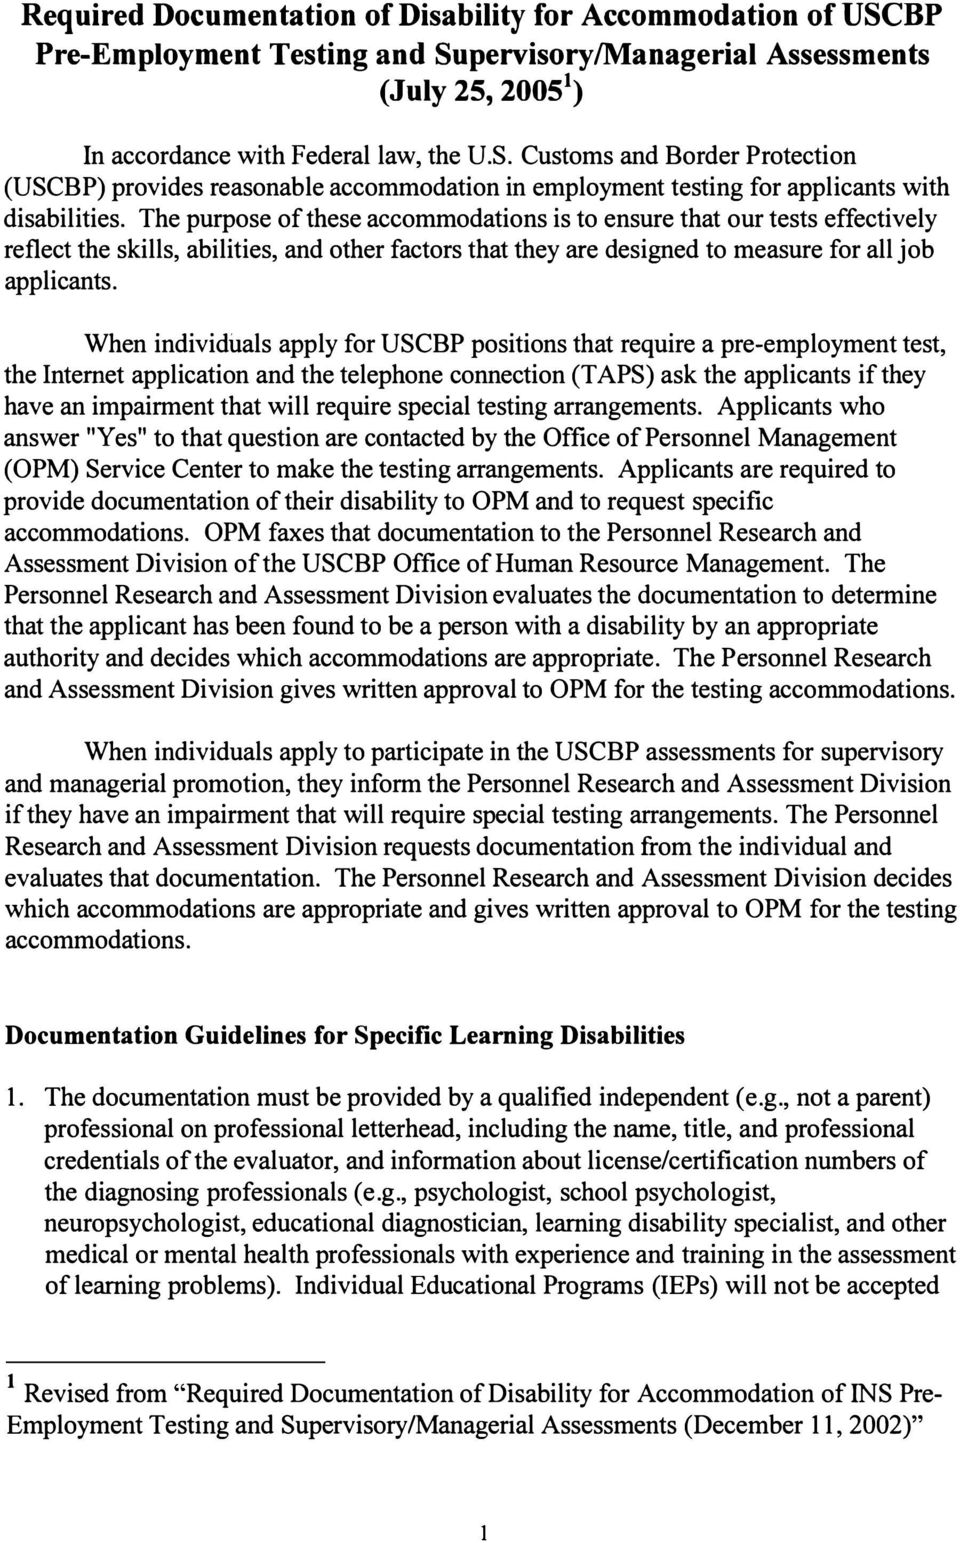 When individuals apply for USCBP positions that require a pre-employment test, the Internet application and the telephone connection (TAPS) ask the applicants if they have an impairment that will